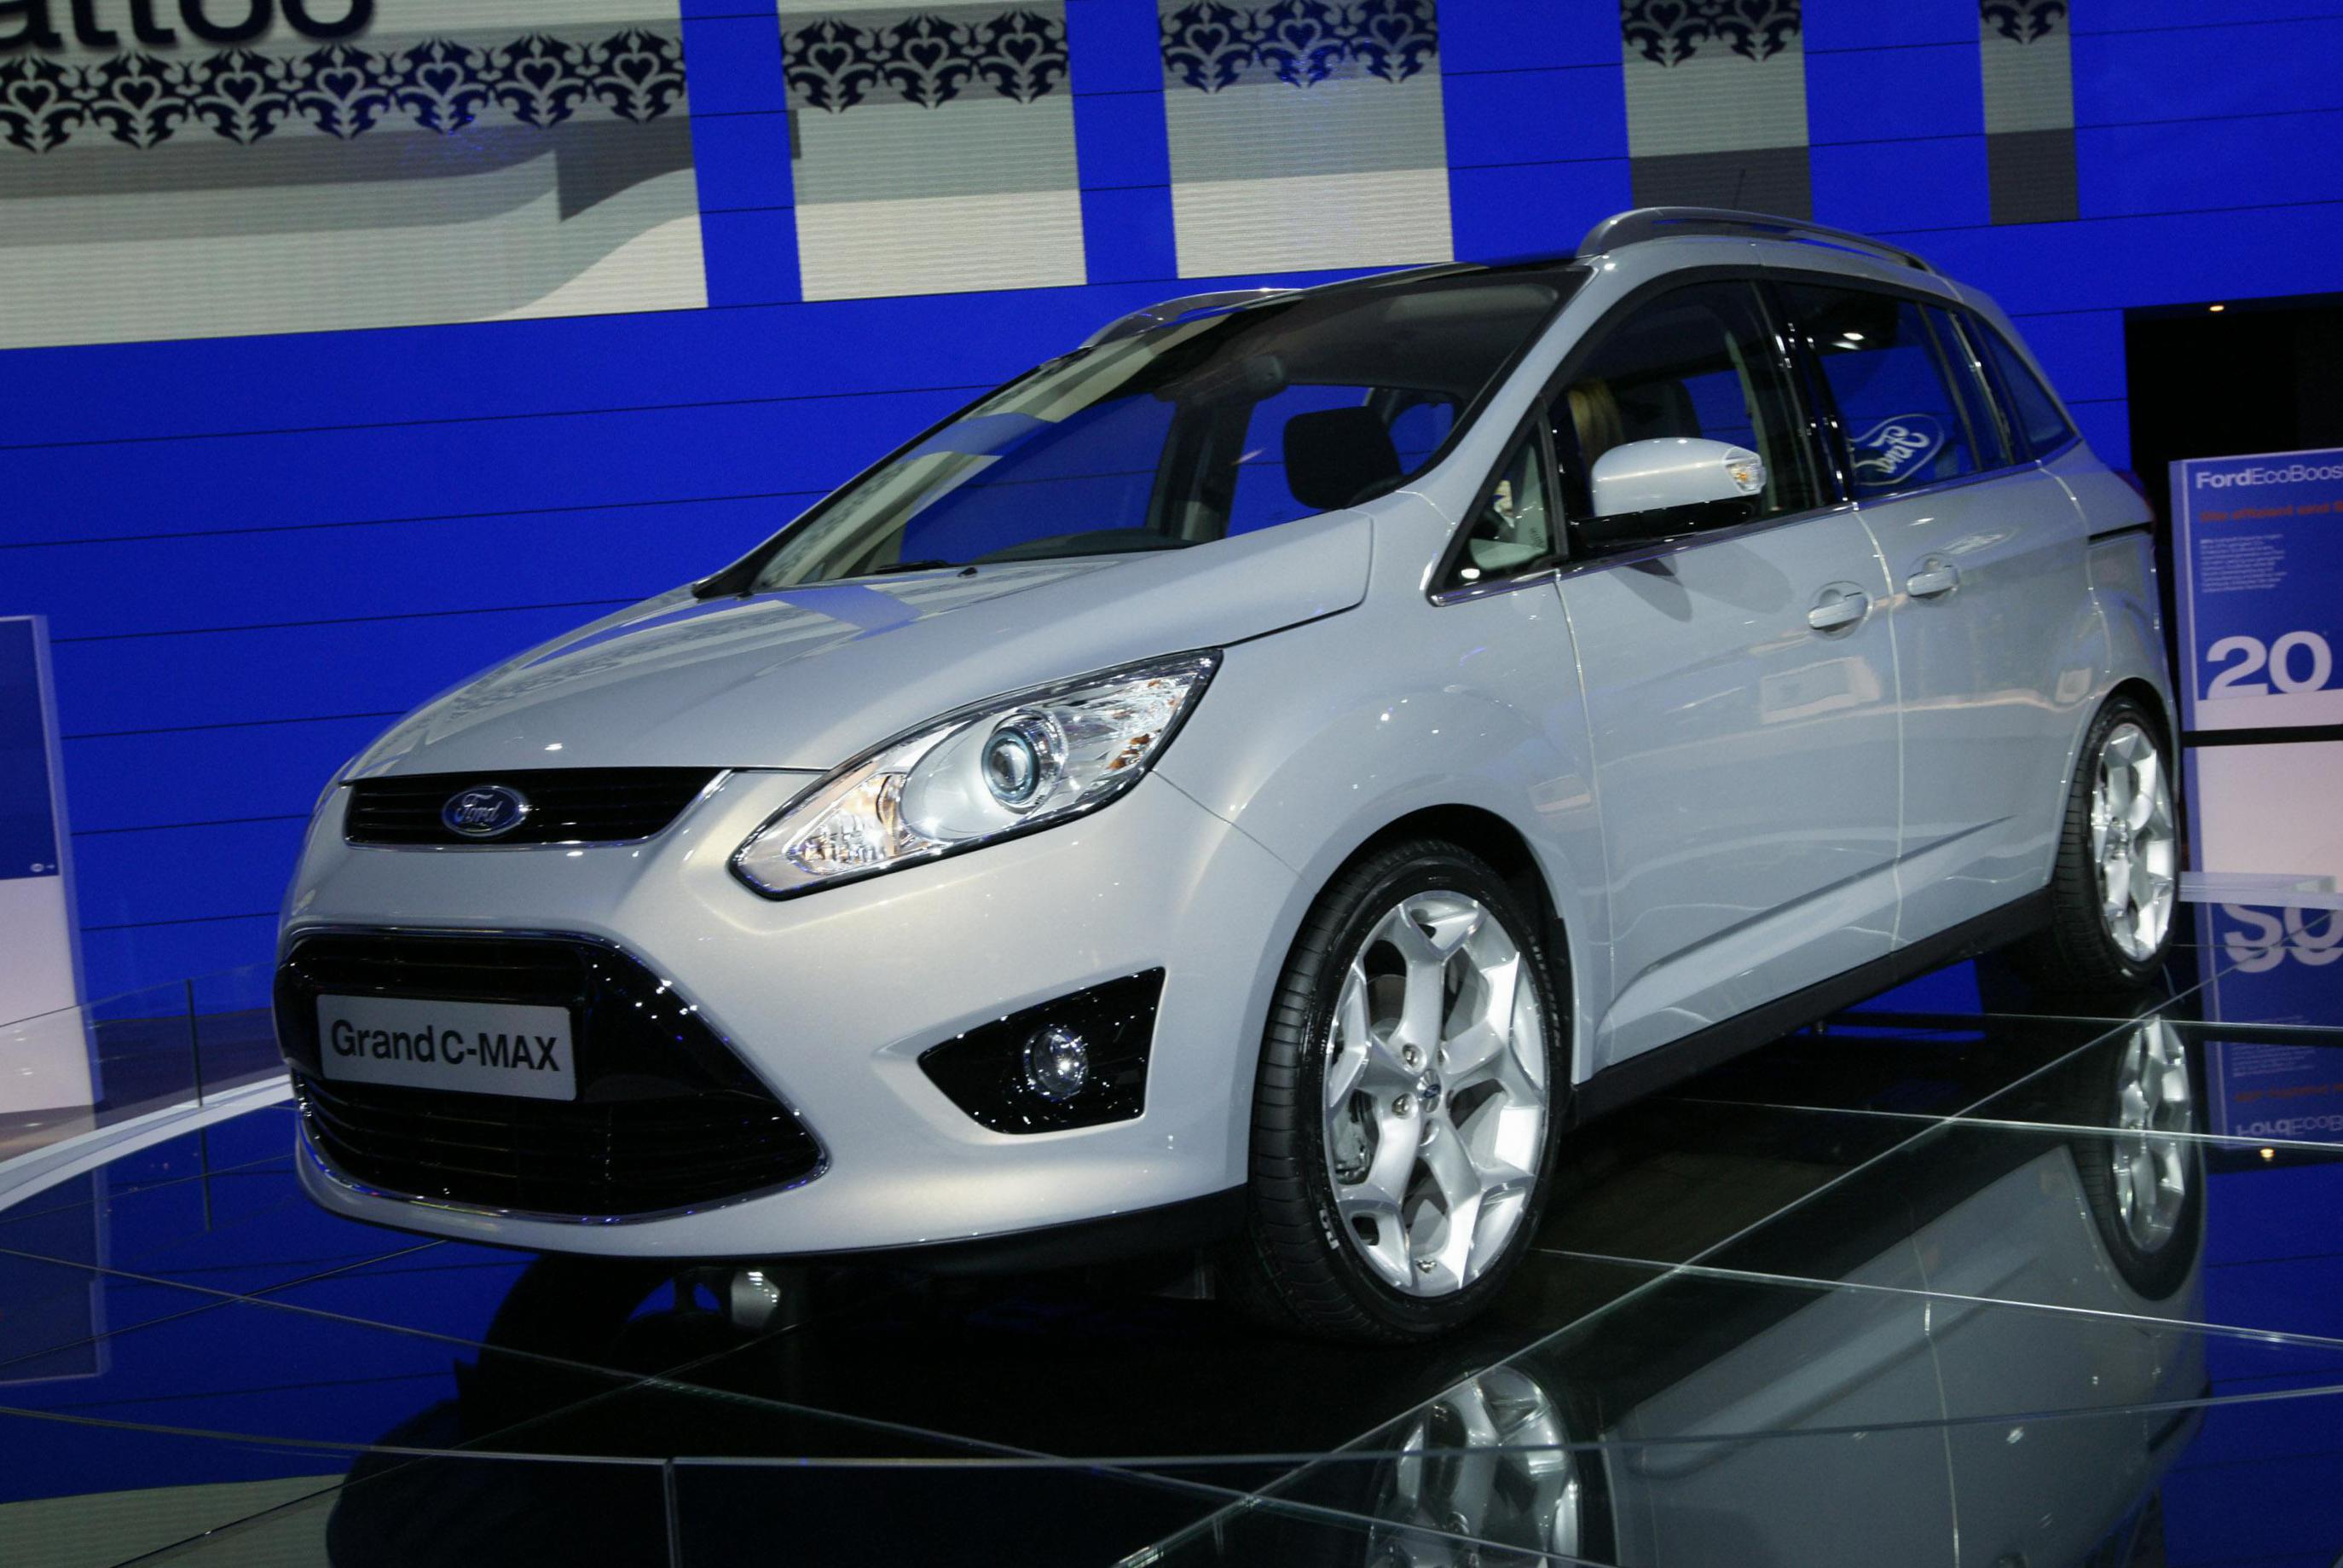 Grand C-Max Ford models 2014